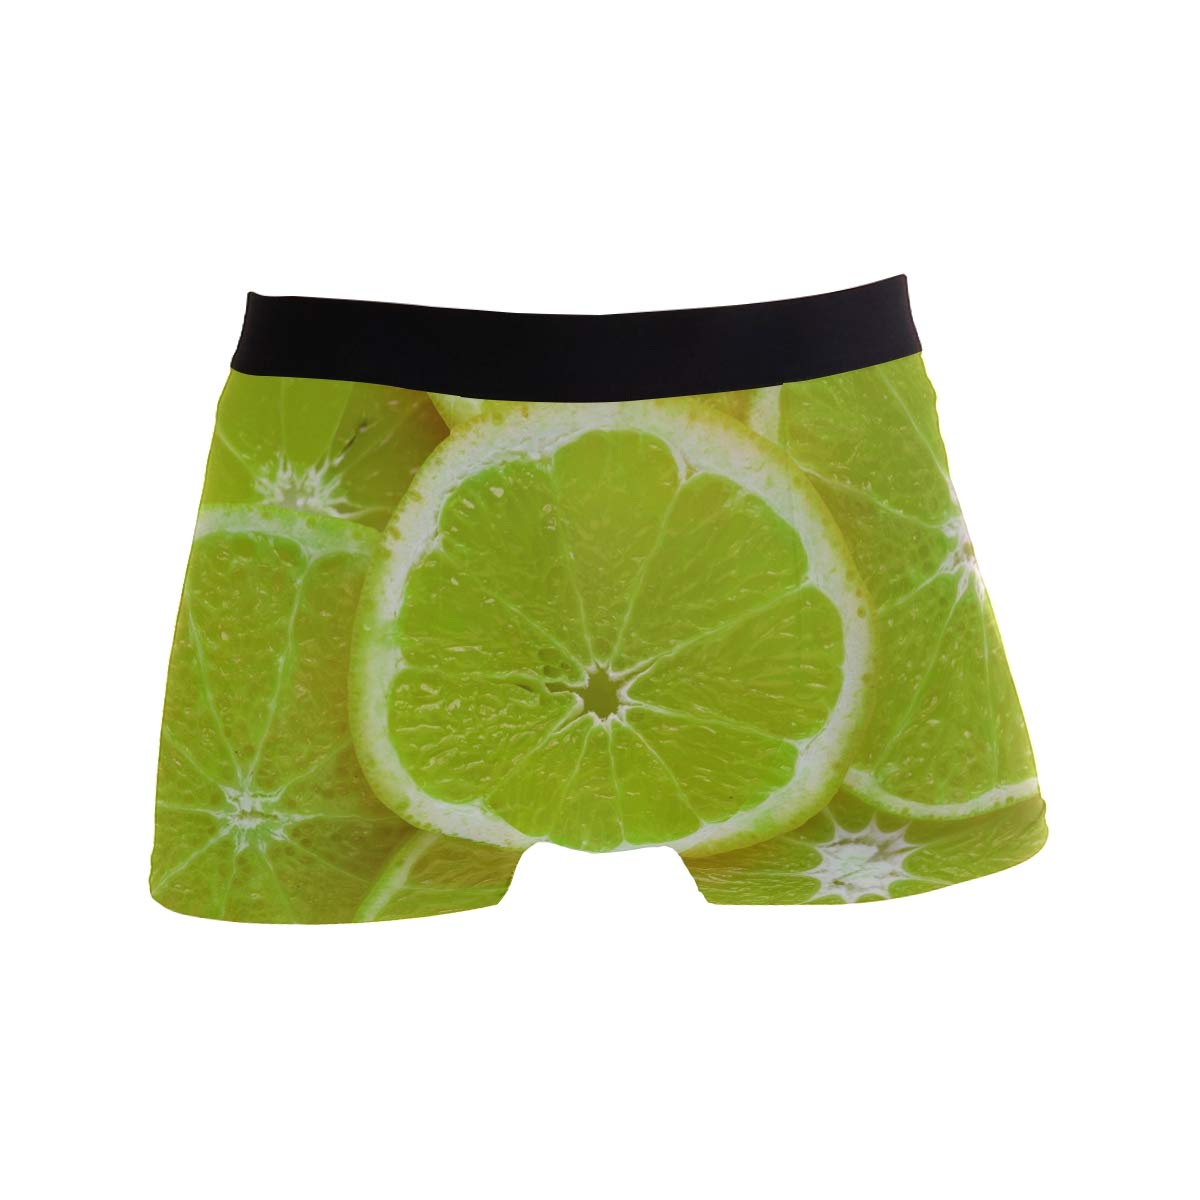 Hipster Unique Acid Background Citric Boxer Briefs Mens Underwear Boys Breathable Stretch Low Rise